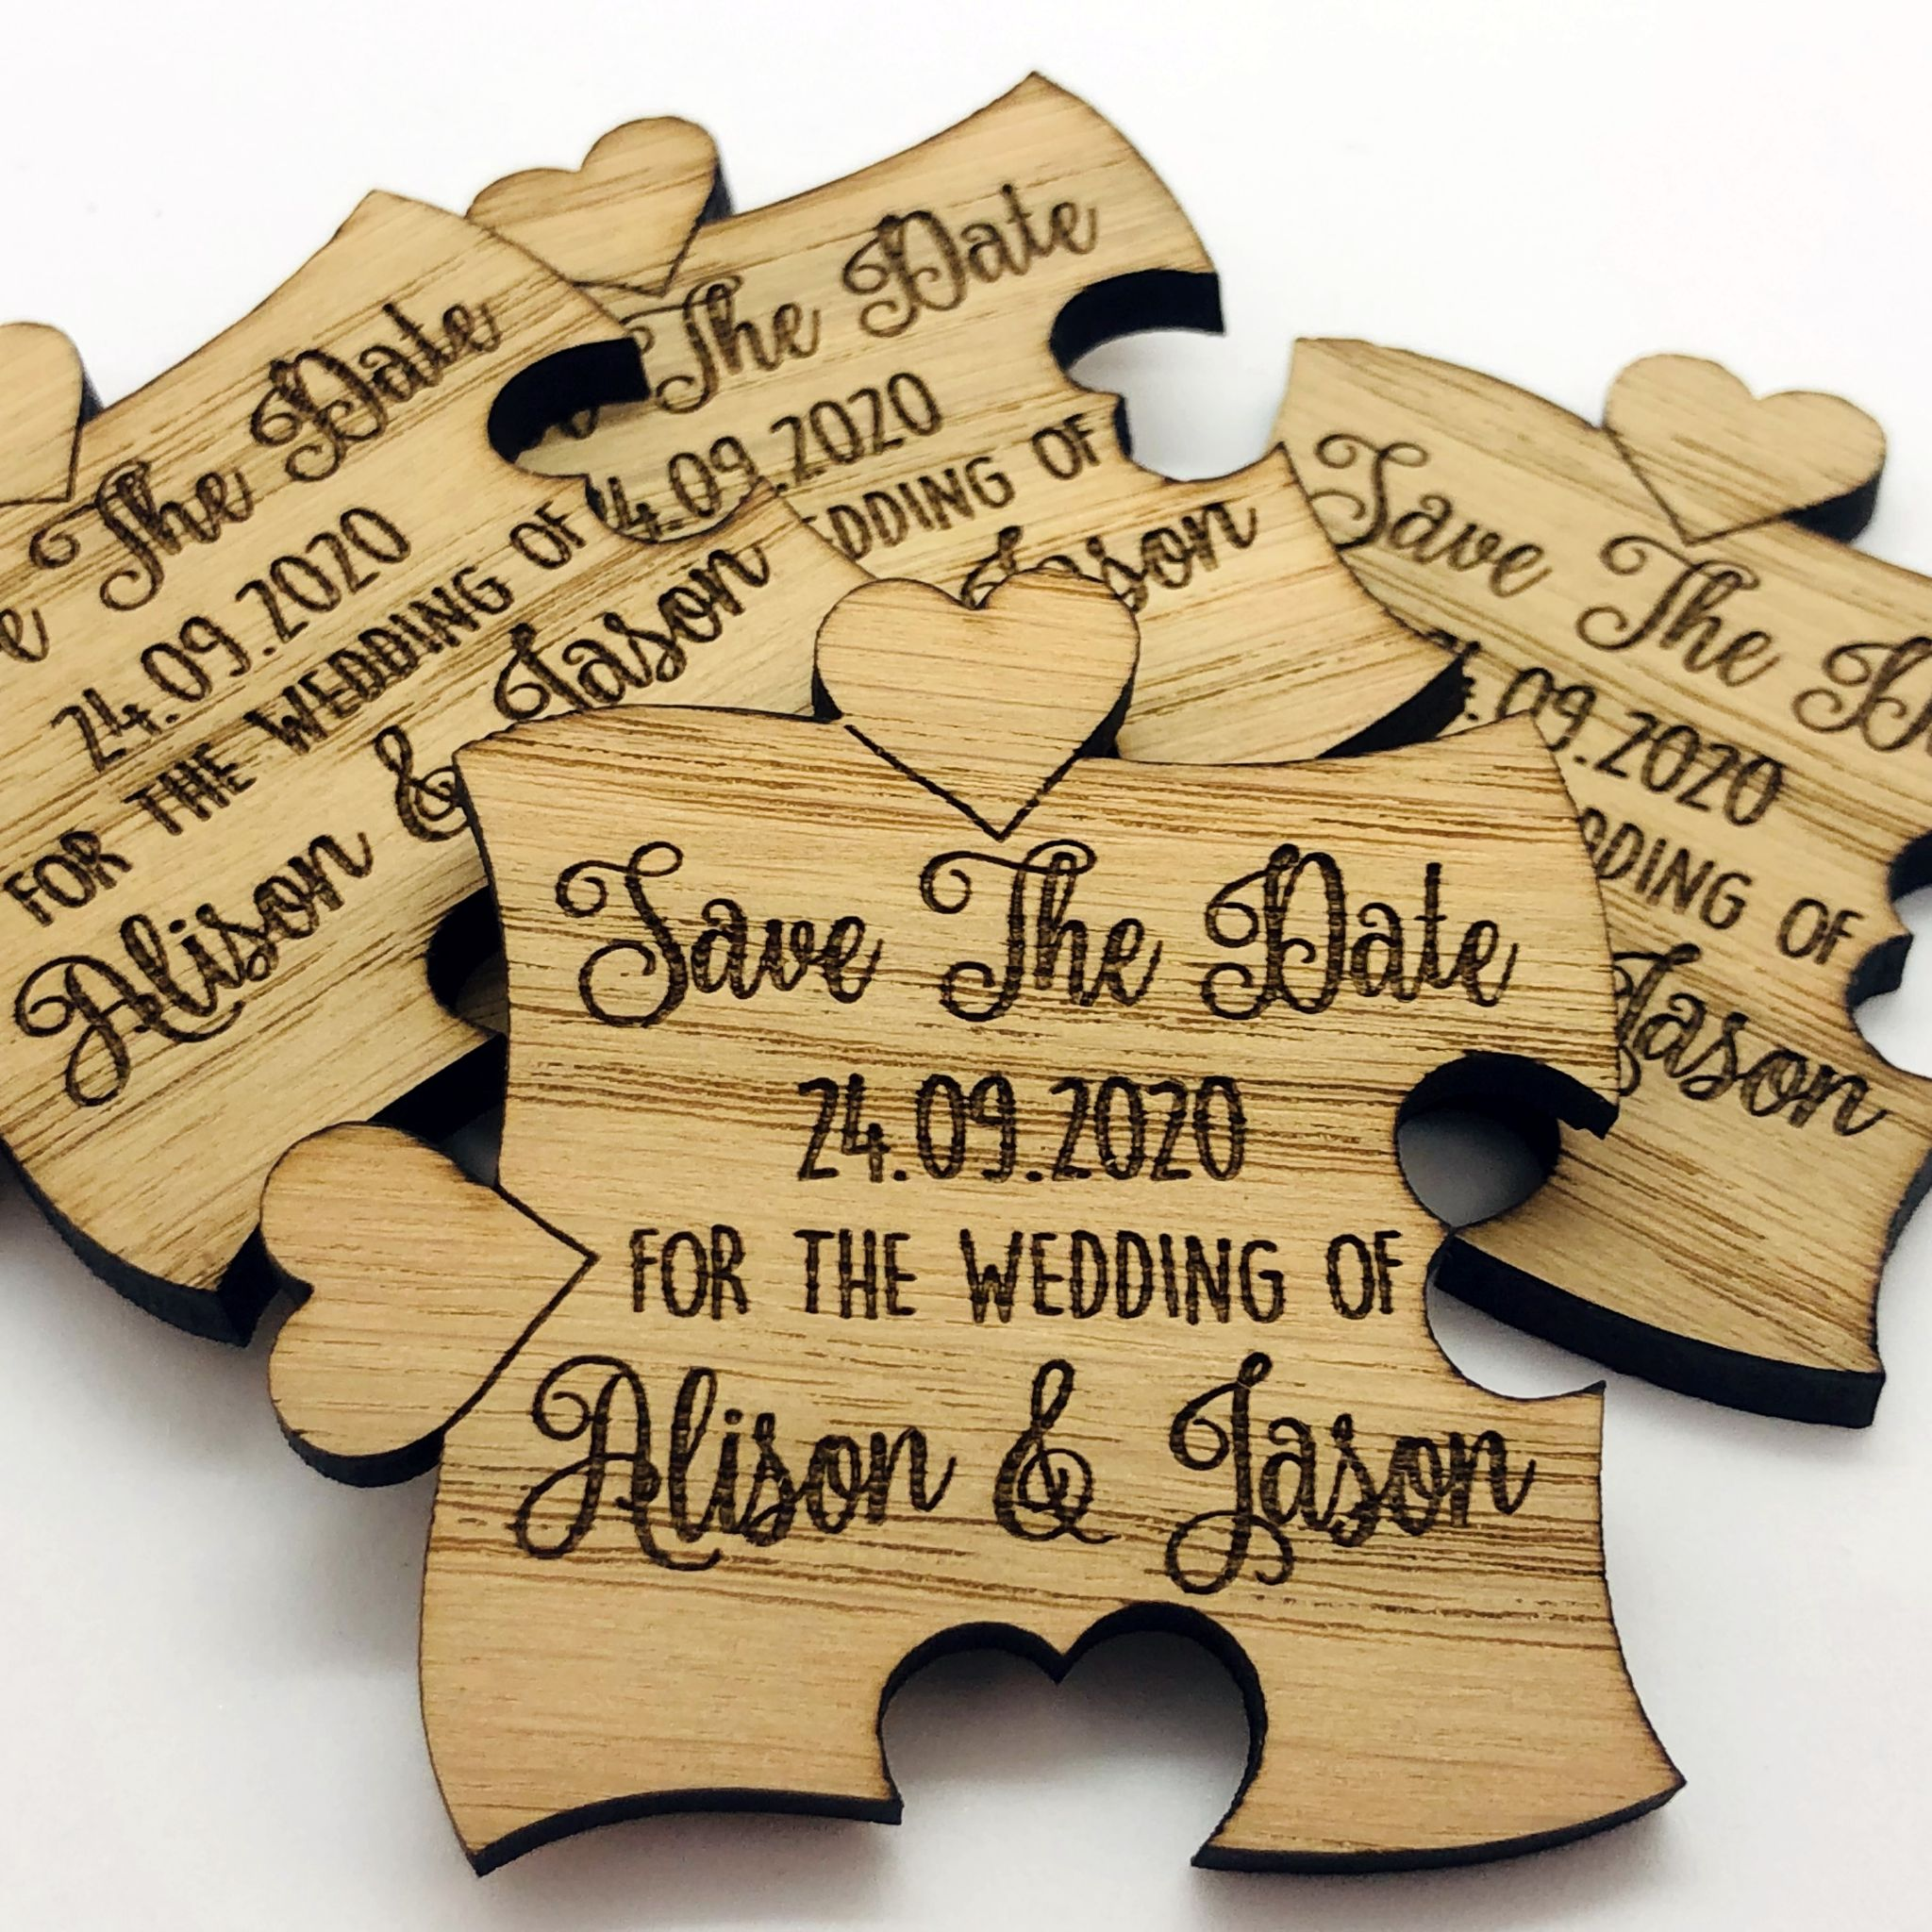 Little Gifts With Love - Personalised Engraved Rustic Wooden Oak Jigsaw Save The Date Fridge Magnets Invites